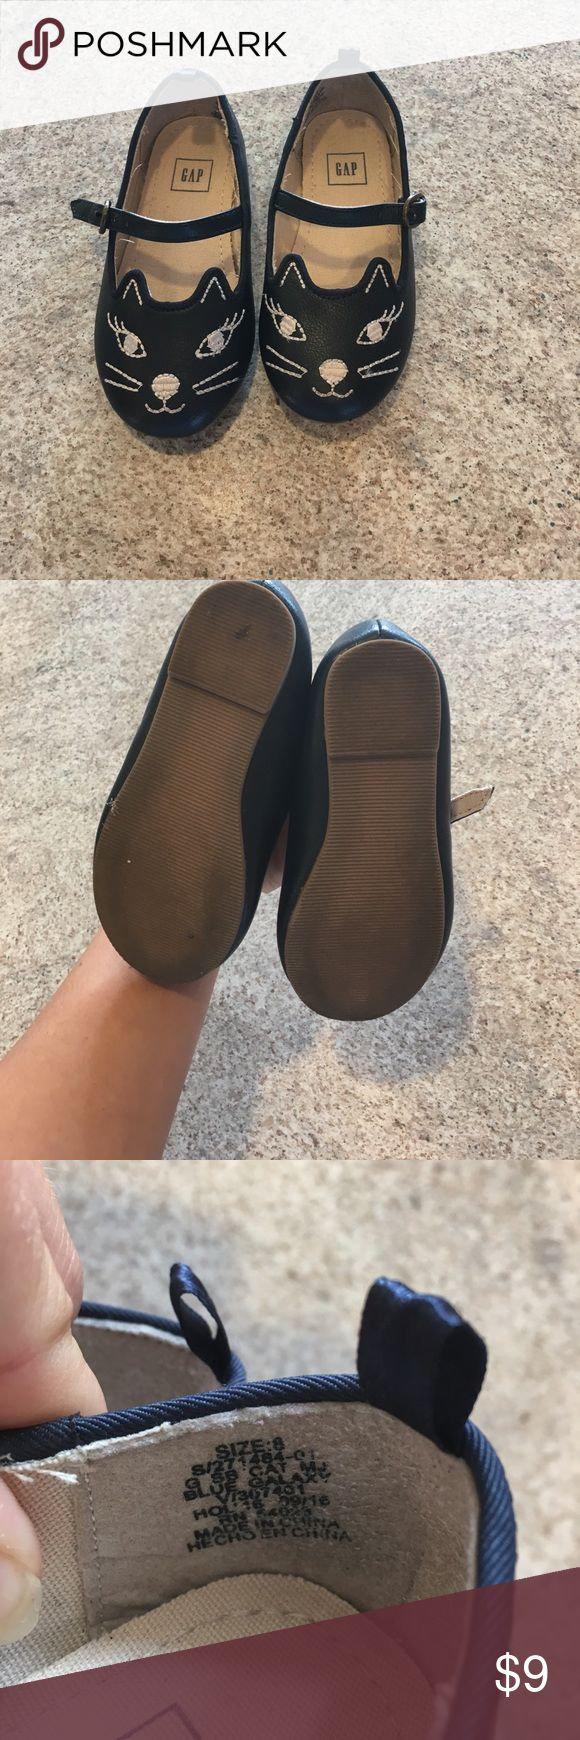 Gap toddler cat shoes Gap toddler size 8 navy blue with tan stitching cat shoes. These are buckle shoes excellent condition smoke-free clean home. Only worn twice GAP Shoes Dress Shoes